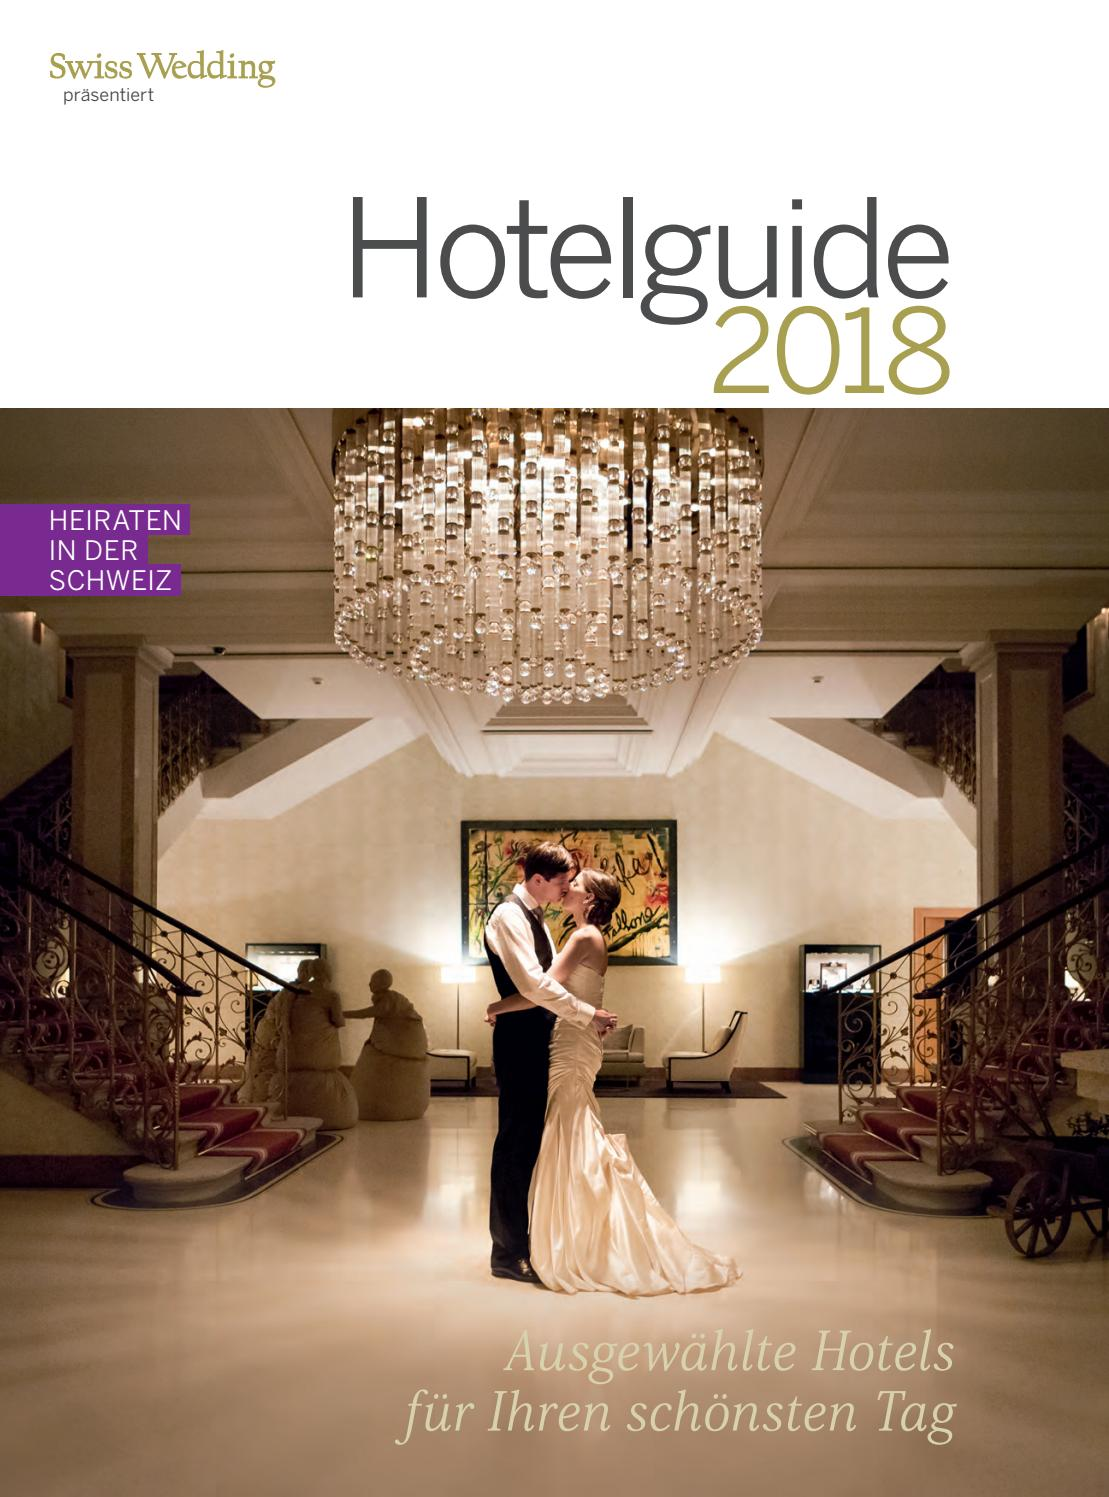 Swiss Wedding Hotelguide 2018 By Bl Verlag Ag Issuu